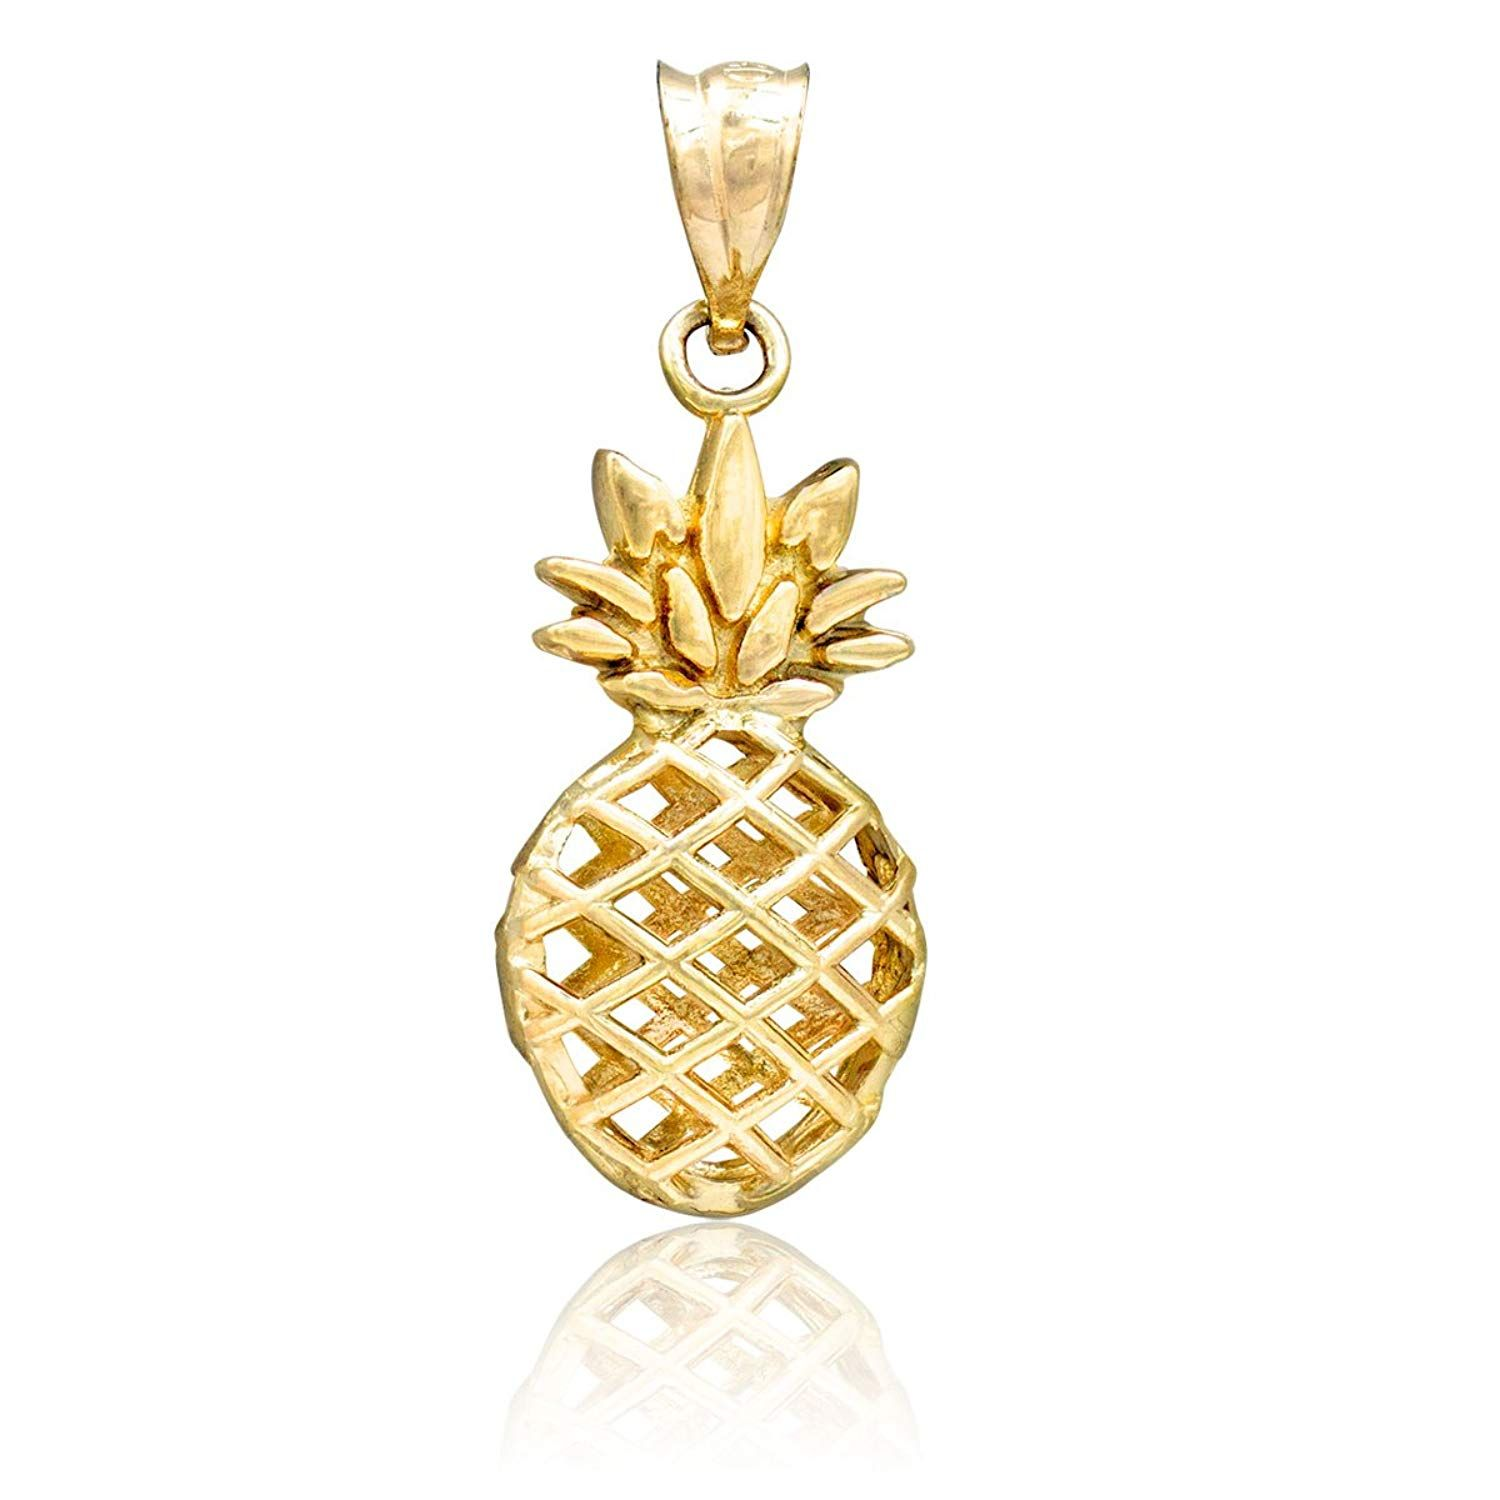 Honolulu Jewelry Company 14k Yellow Gold Pineapple Necklace Pendant Nice Of You To Drop By To S Pineapple Necklace Gold Pineapple Necklace Jewelry Companies